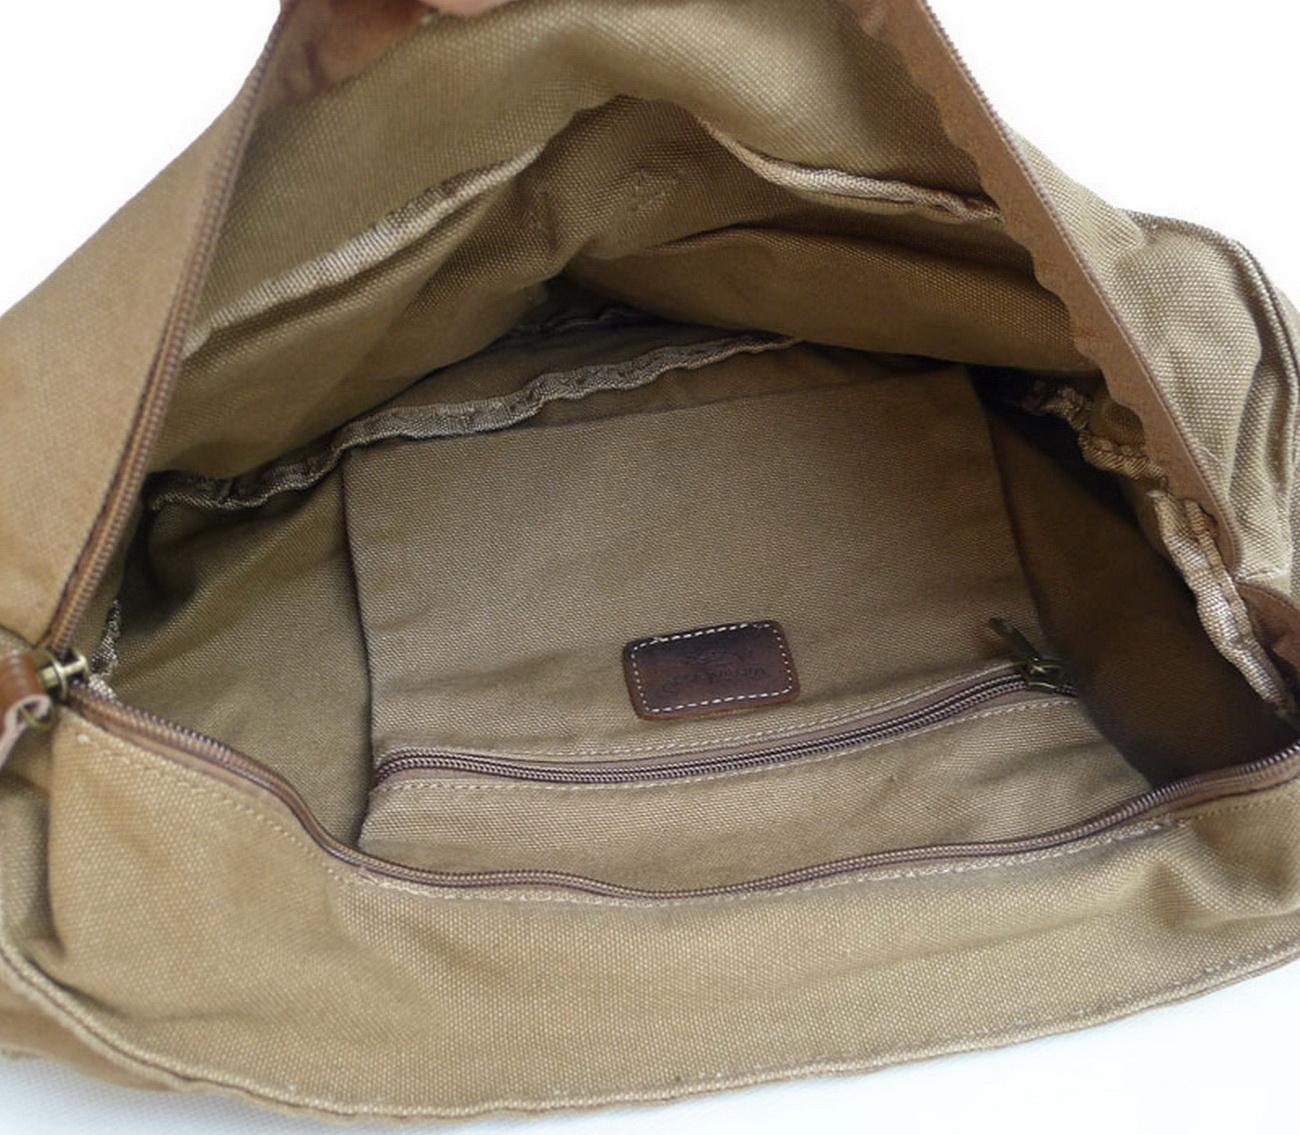 Vintage Cotton Canvas 13.5 100/% Cotton Washed Canvas Messenger Bag C51.BLK